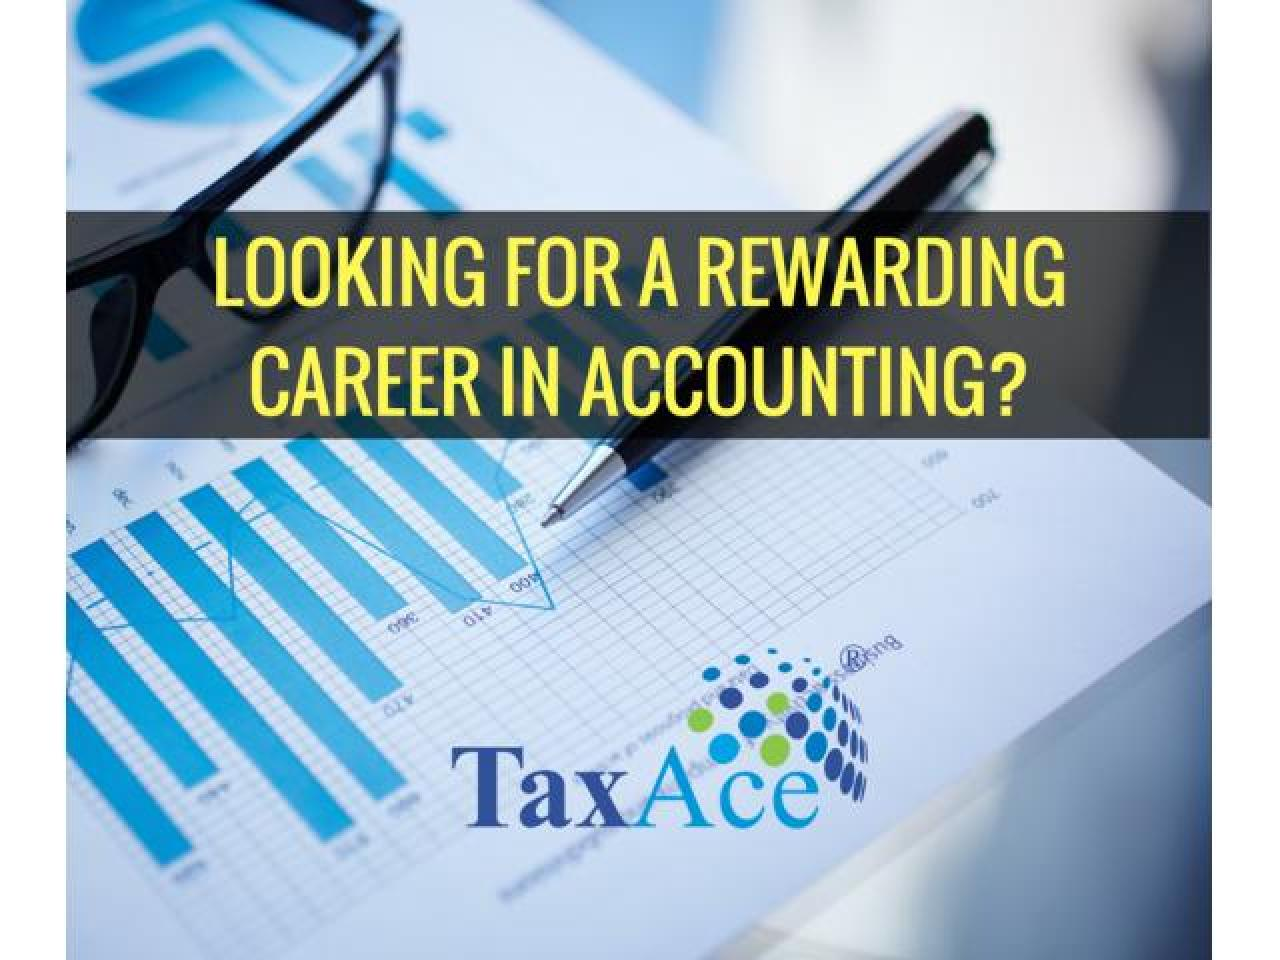 Looking for a rewarding career in Accounting? - 1